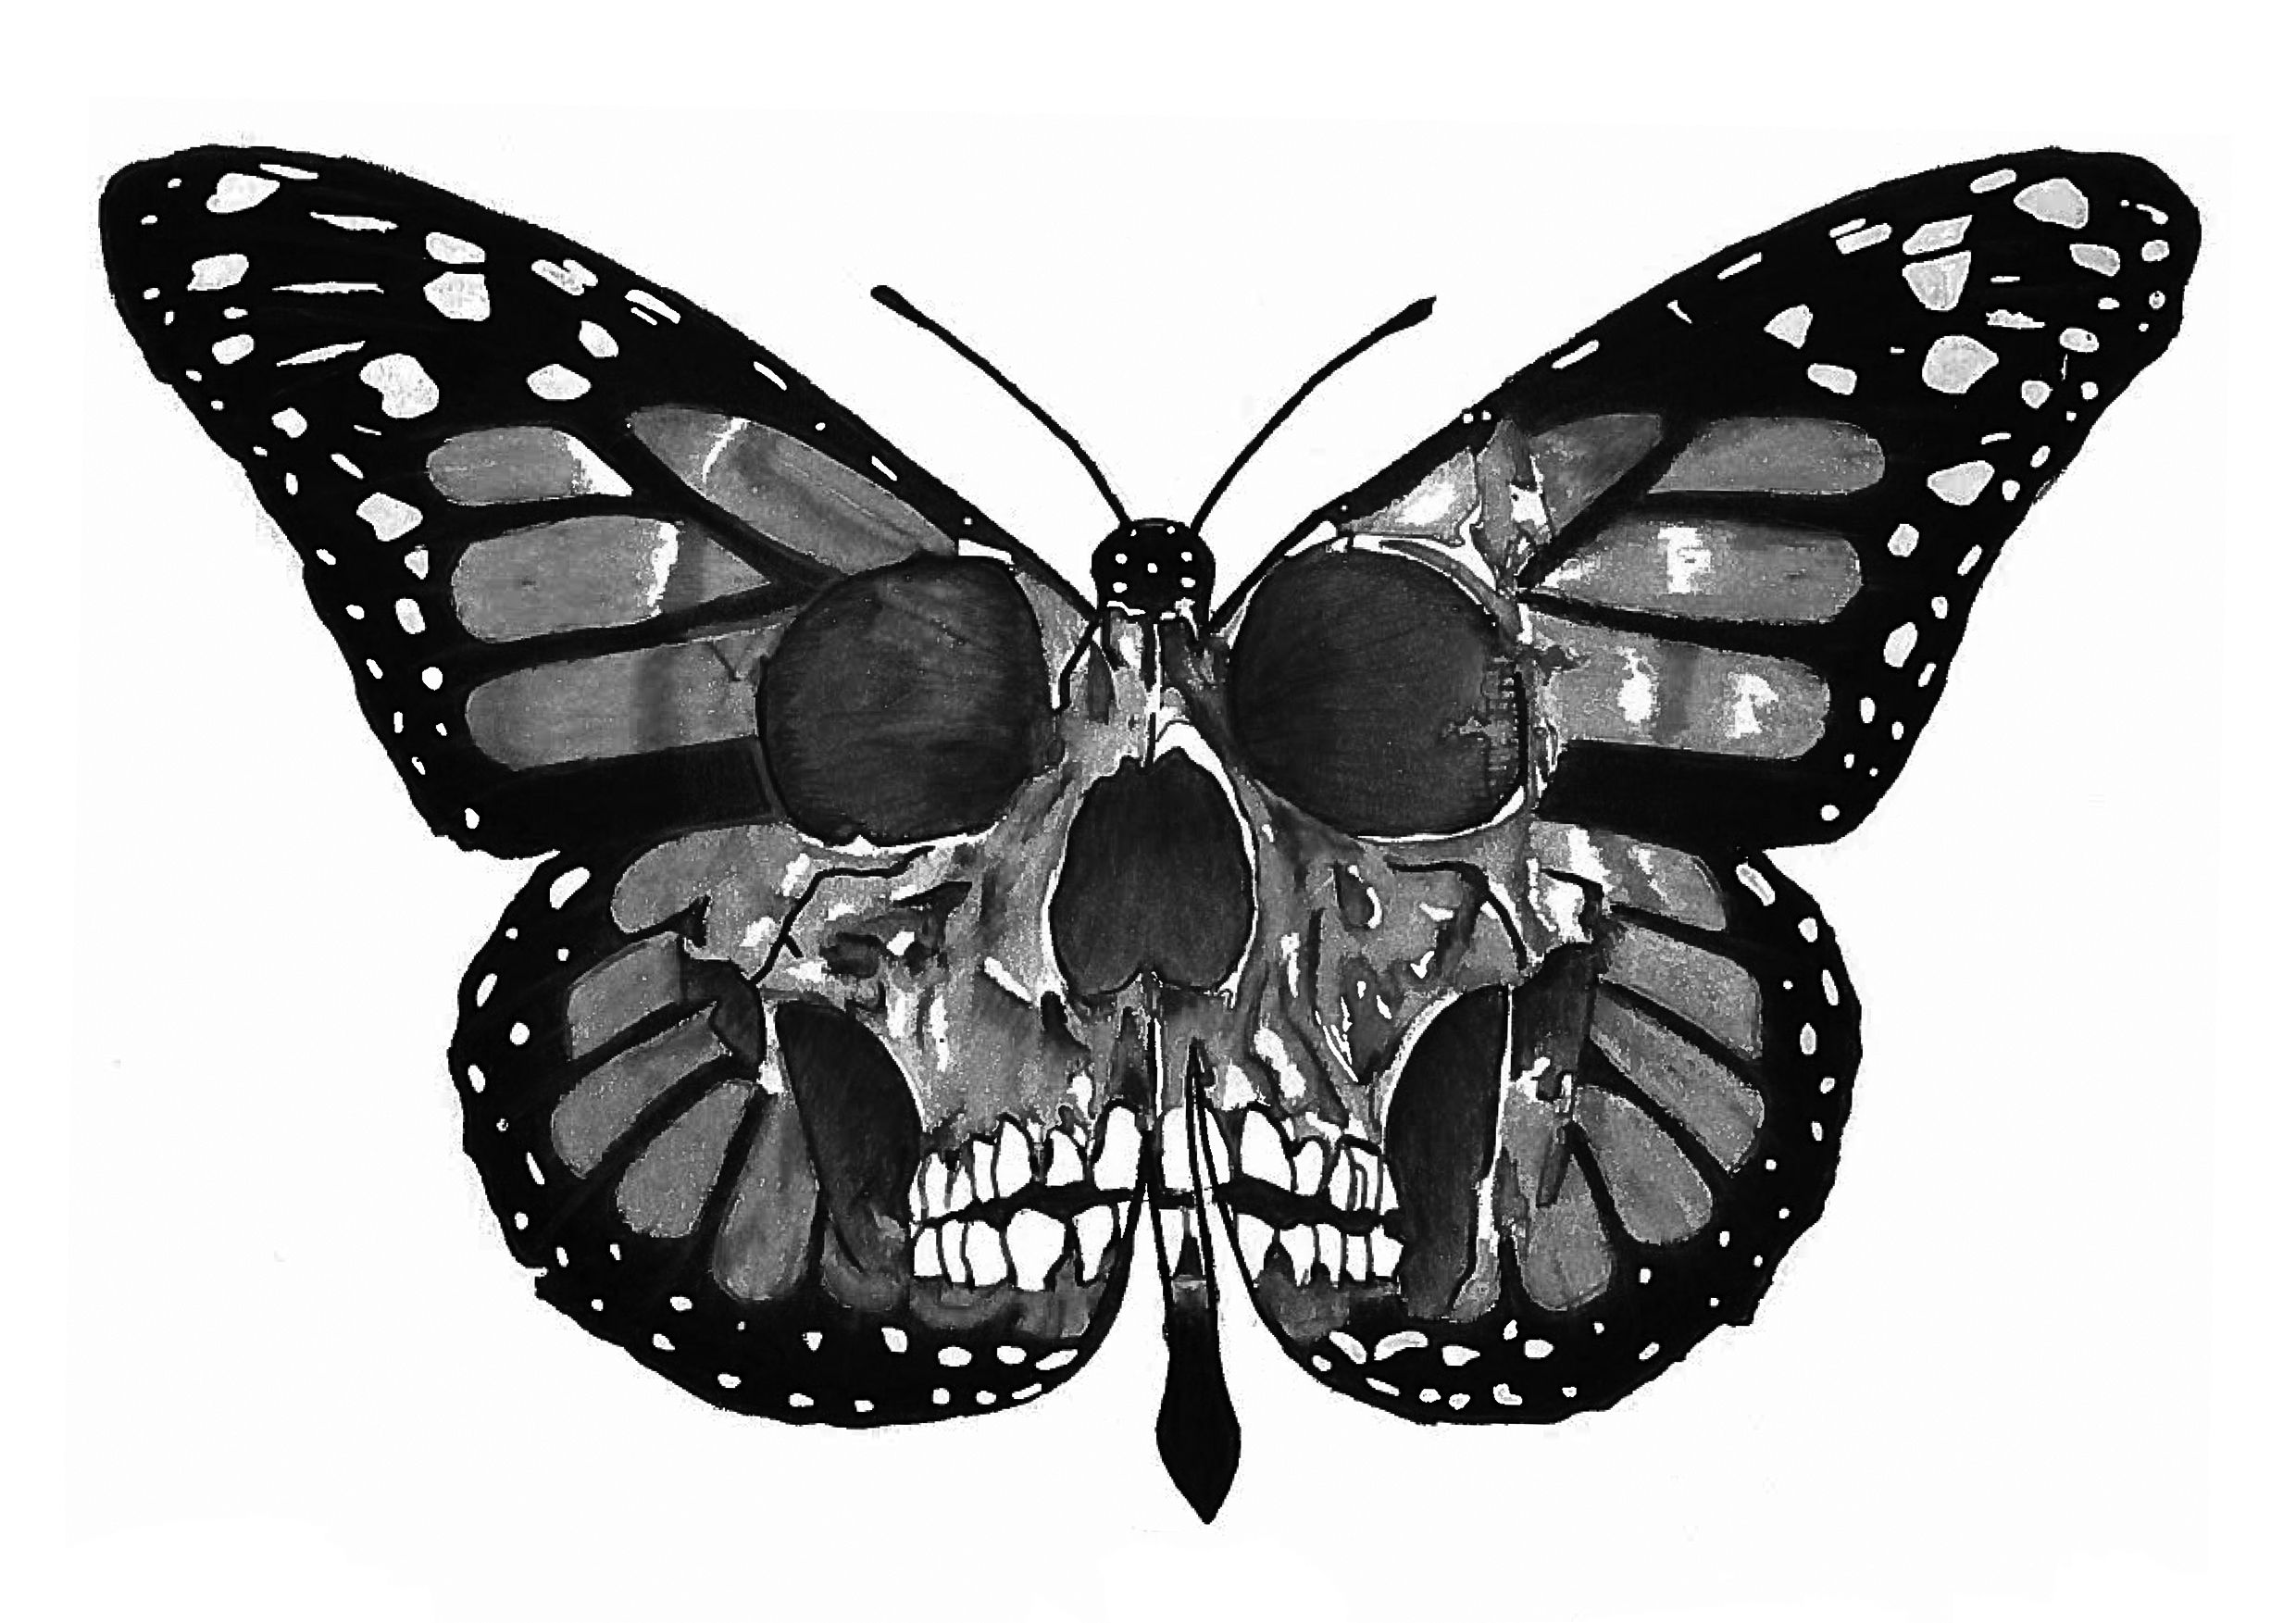 6a4a95422 Black and White Tattoo Design of a Butterfly Skull, Pencil on Paper,  Original Design made by SnCo_art